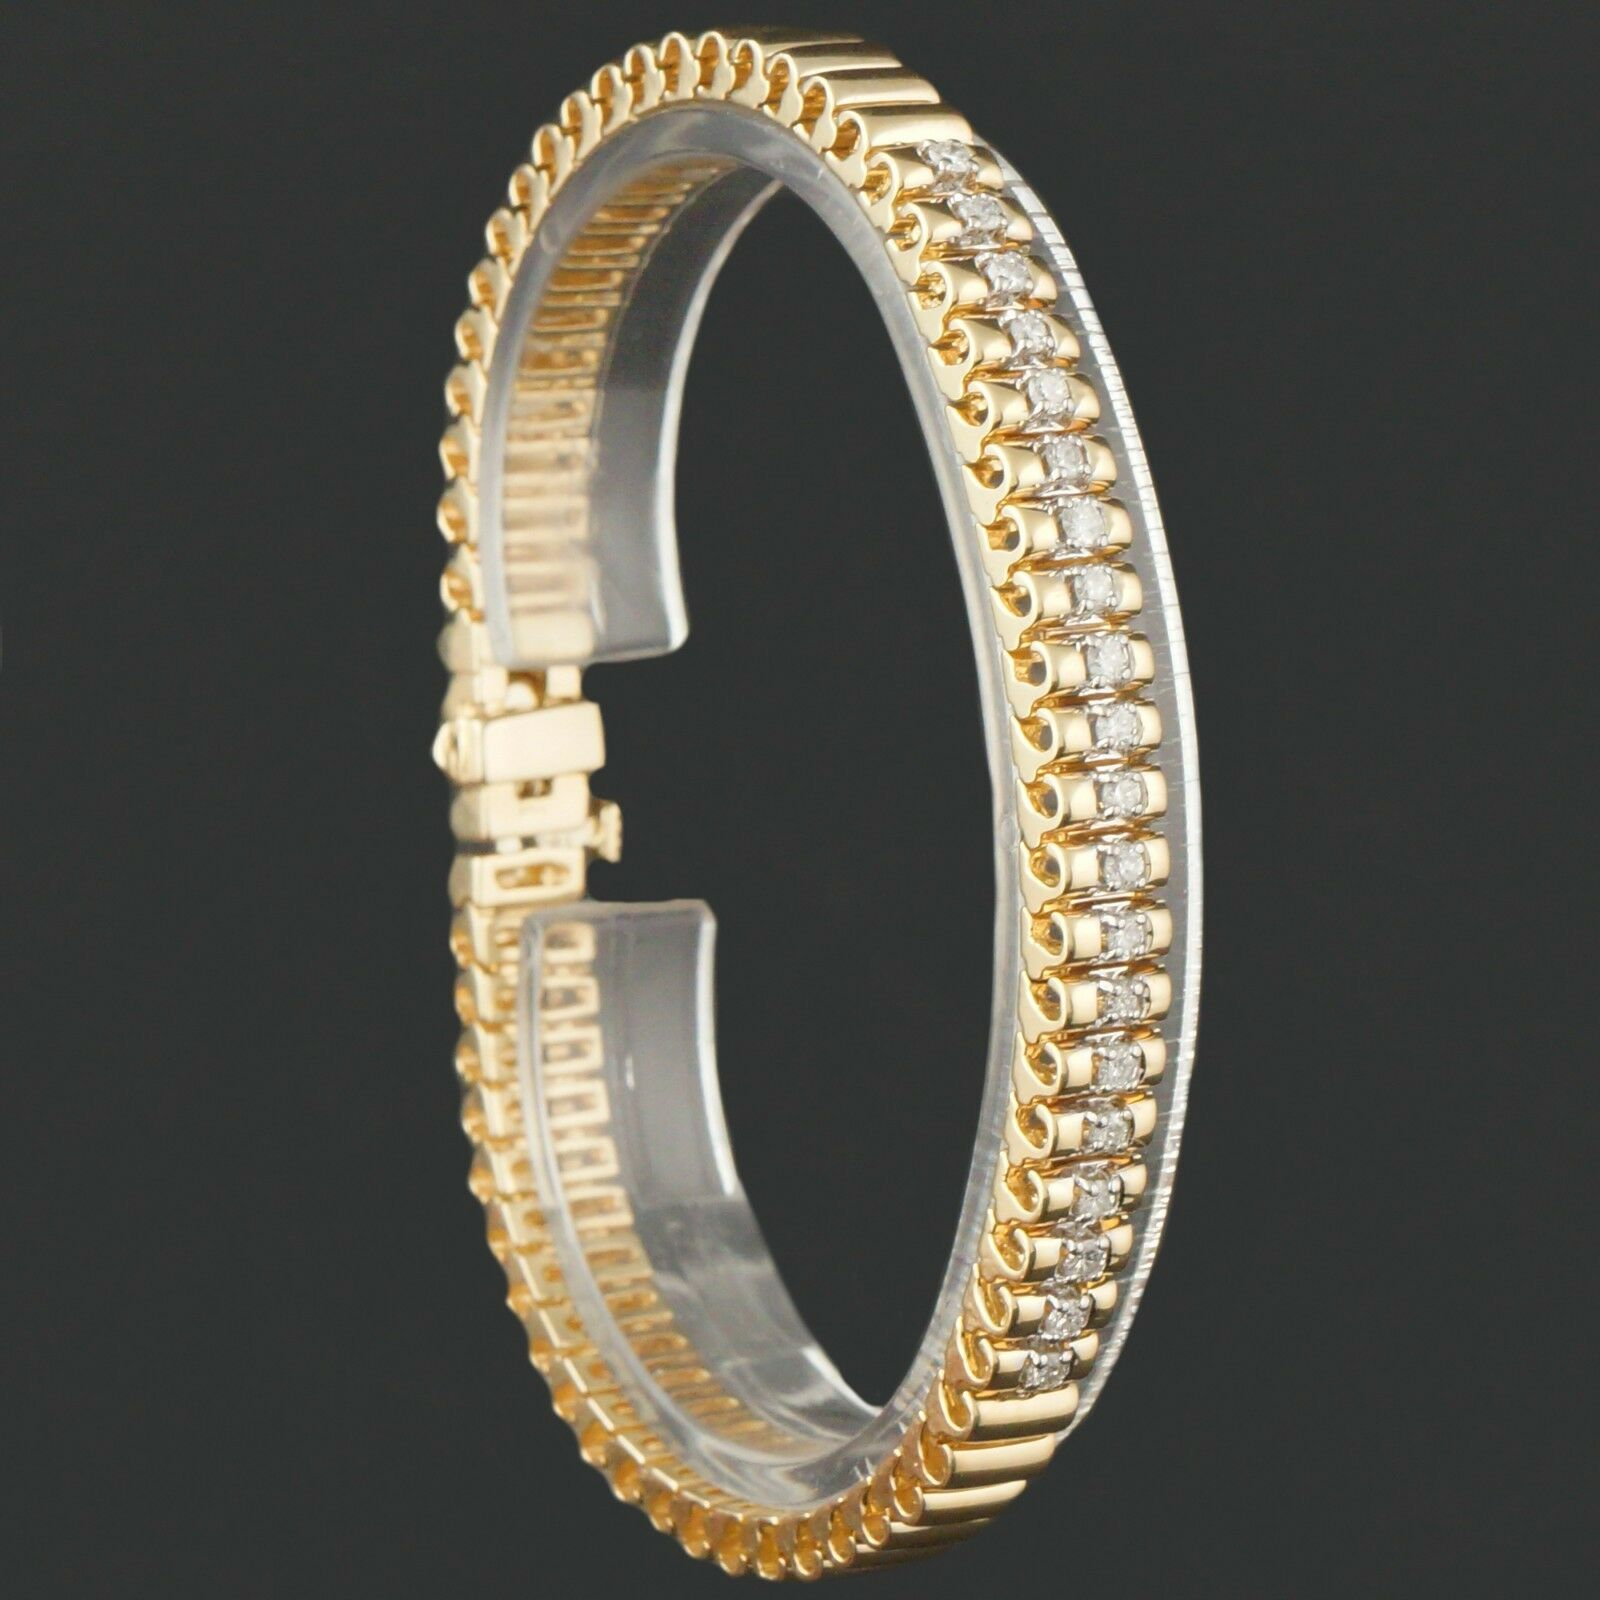 Elegant Solid 14K Yellow gold & .50 ct Diamond Link Estate Bracelet, 25 gram